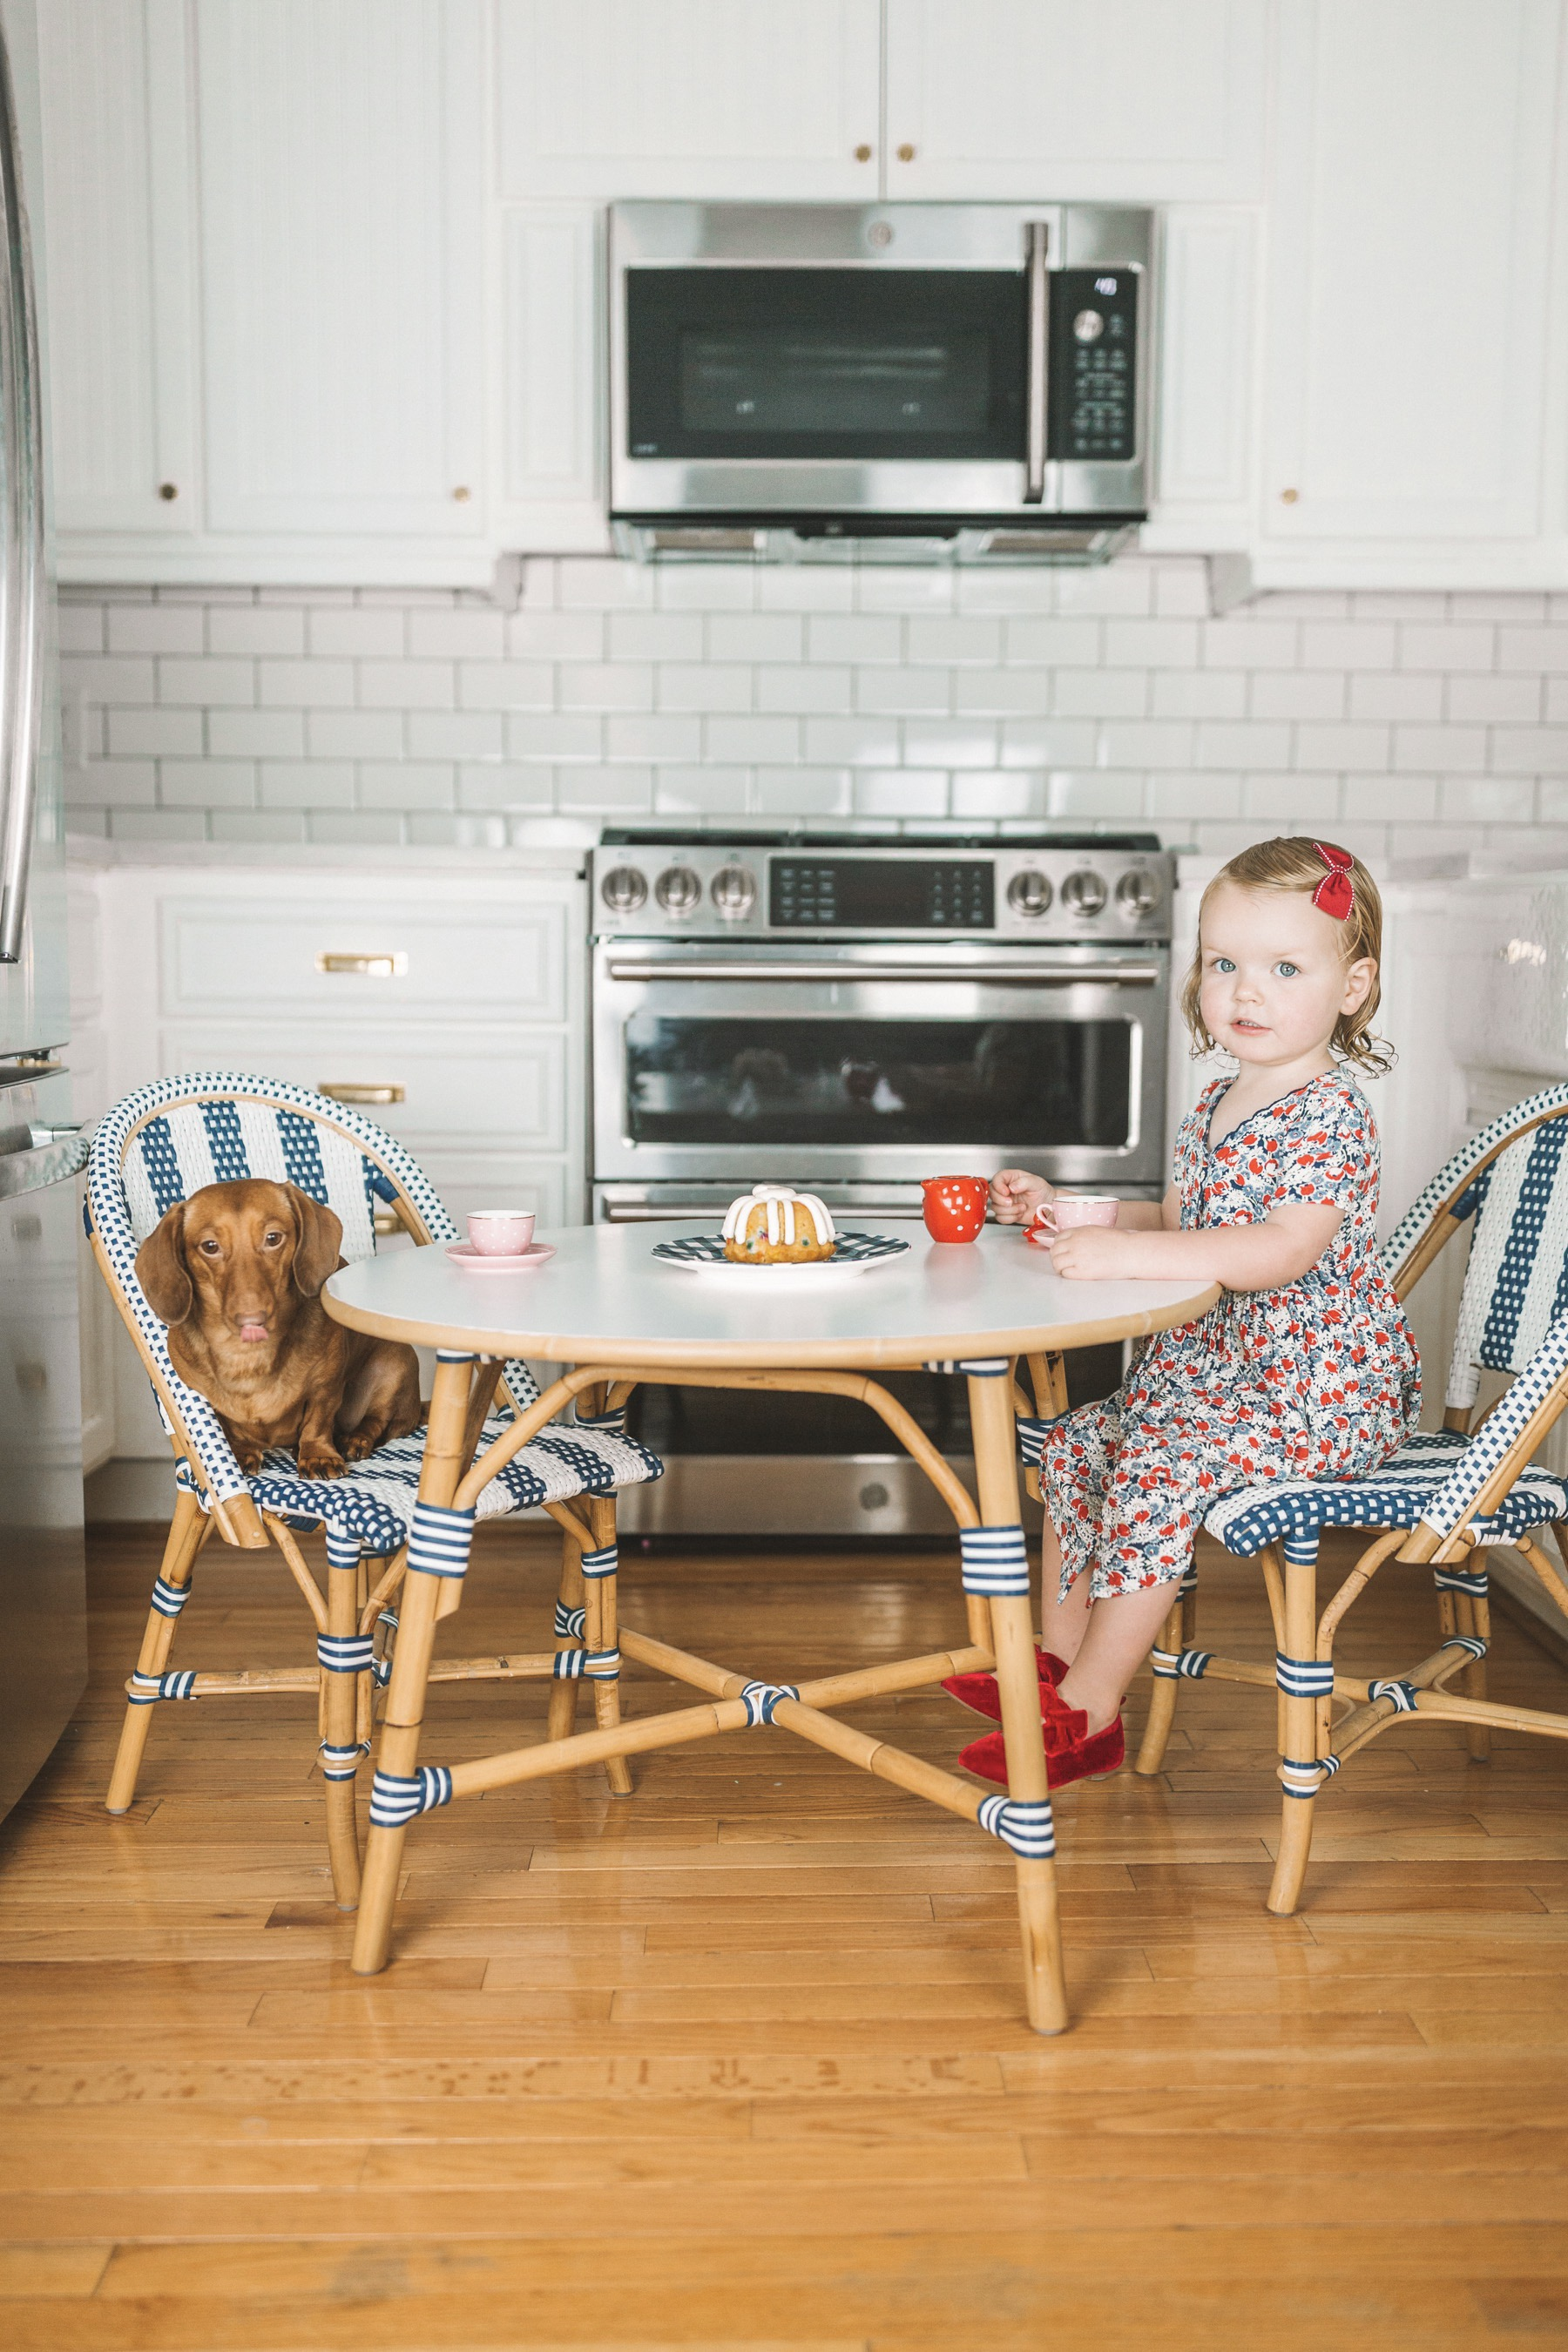 Picture details: Serena & Lily Riviera Kids' Table and Chairs c/o / Old Gap Kids Bow Flats / Newer Ralph Lauren Dress / Hair Bows